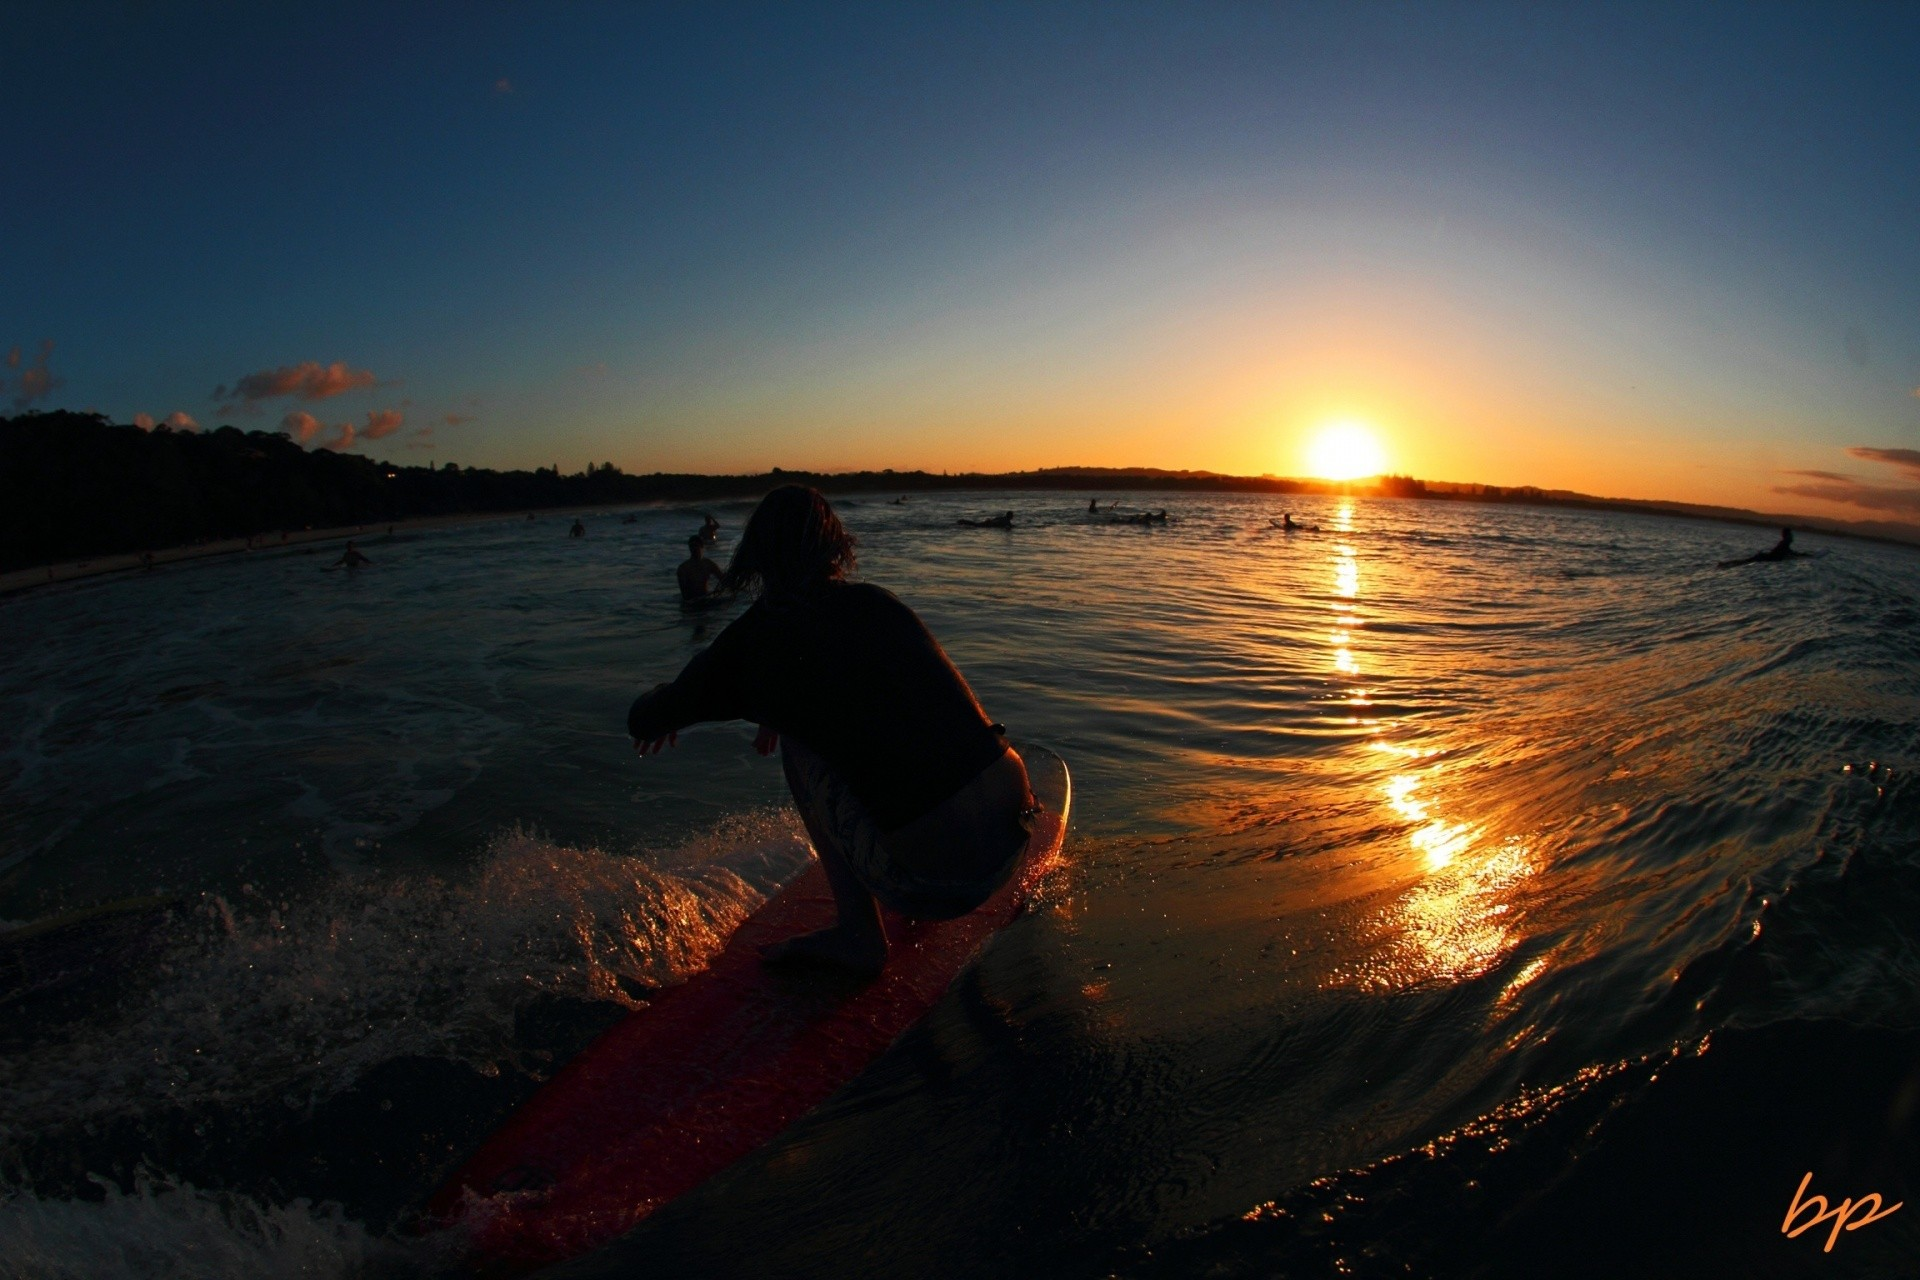 Luke Bullock's photo of Byron Bay